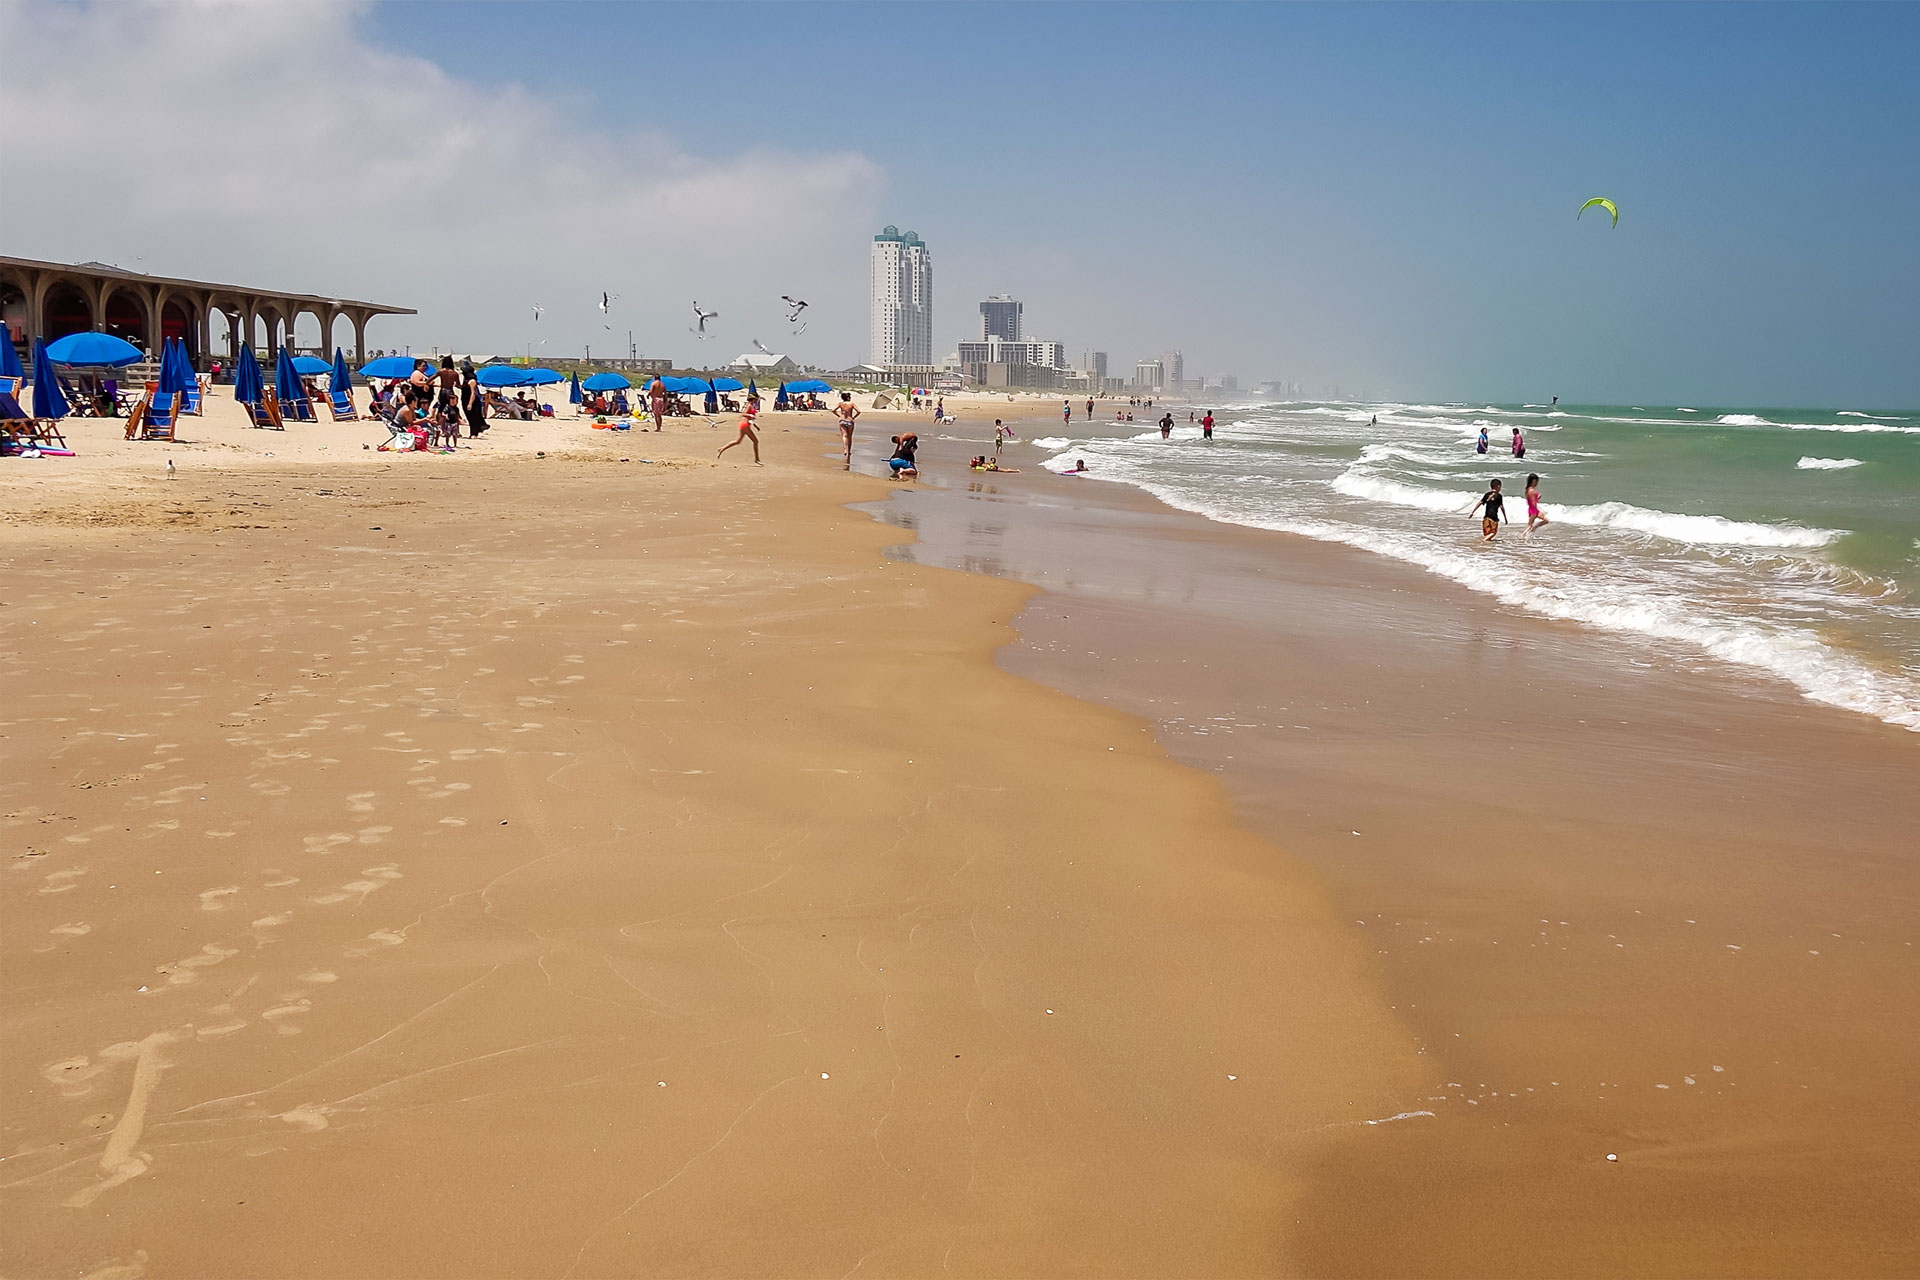 South Padre Island beach; Courtesy of CrackerClips Stock Media/Shutterstock.com